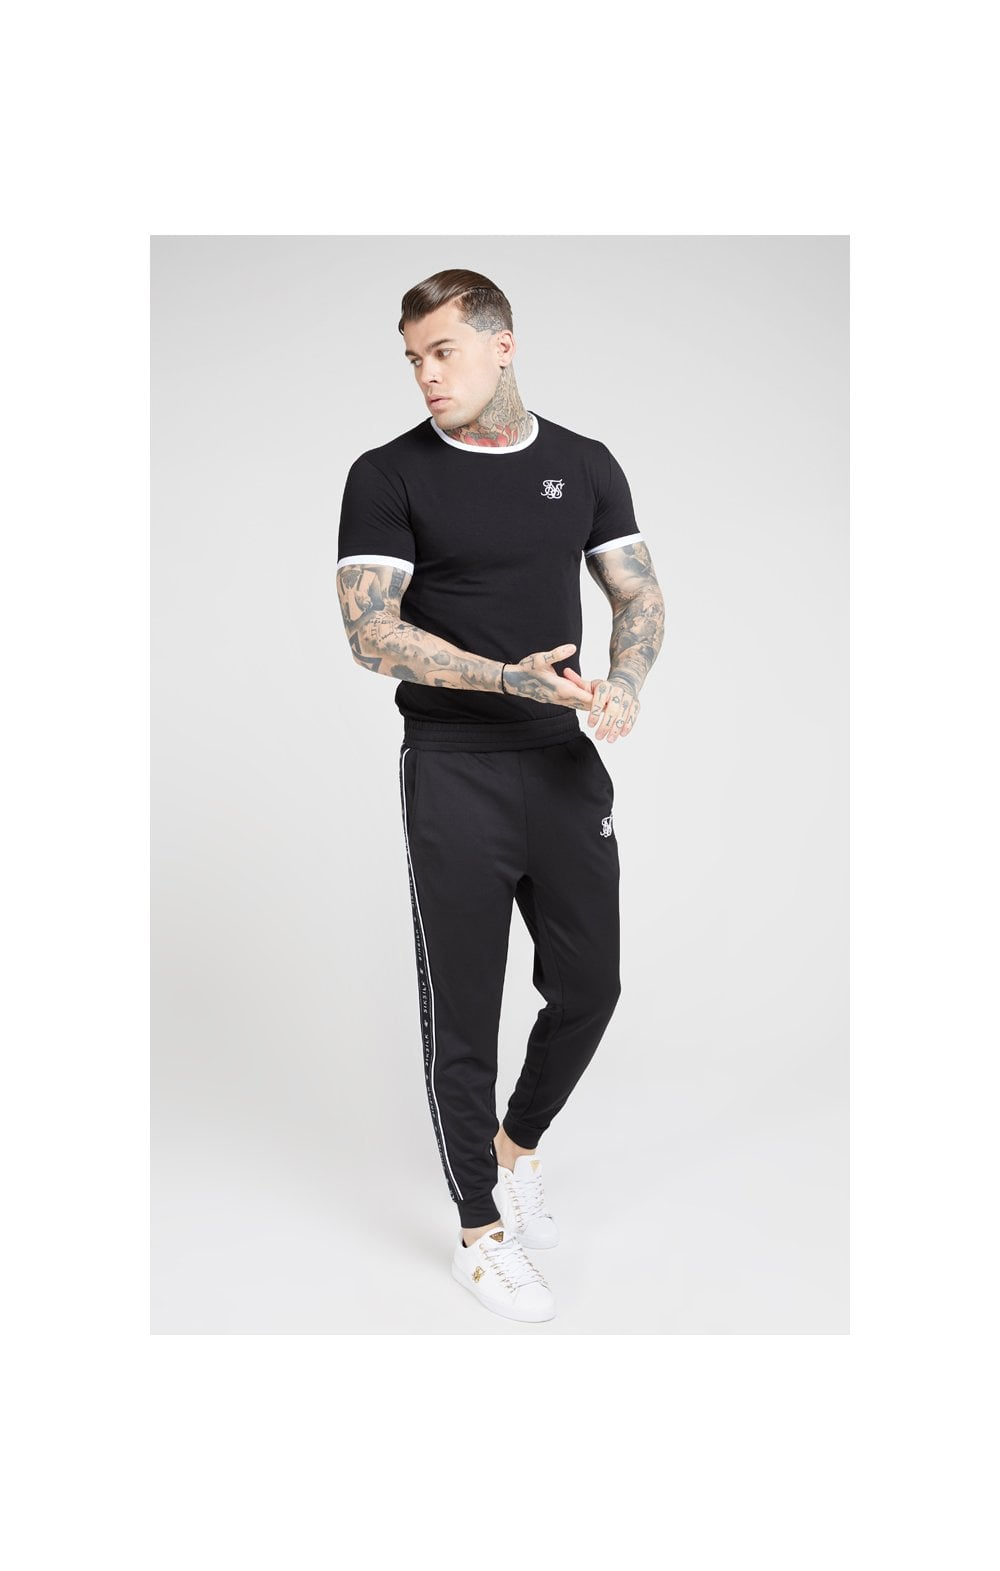 SikSilk S/S Inset Straight Hem Ringer Gym Tee – Black & White (4)